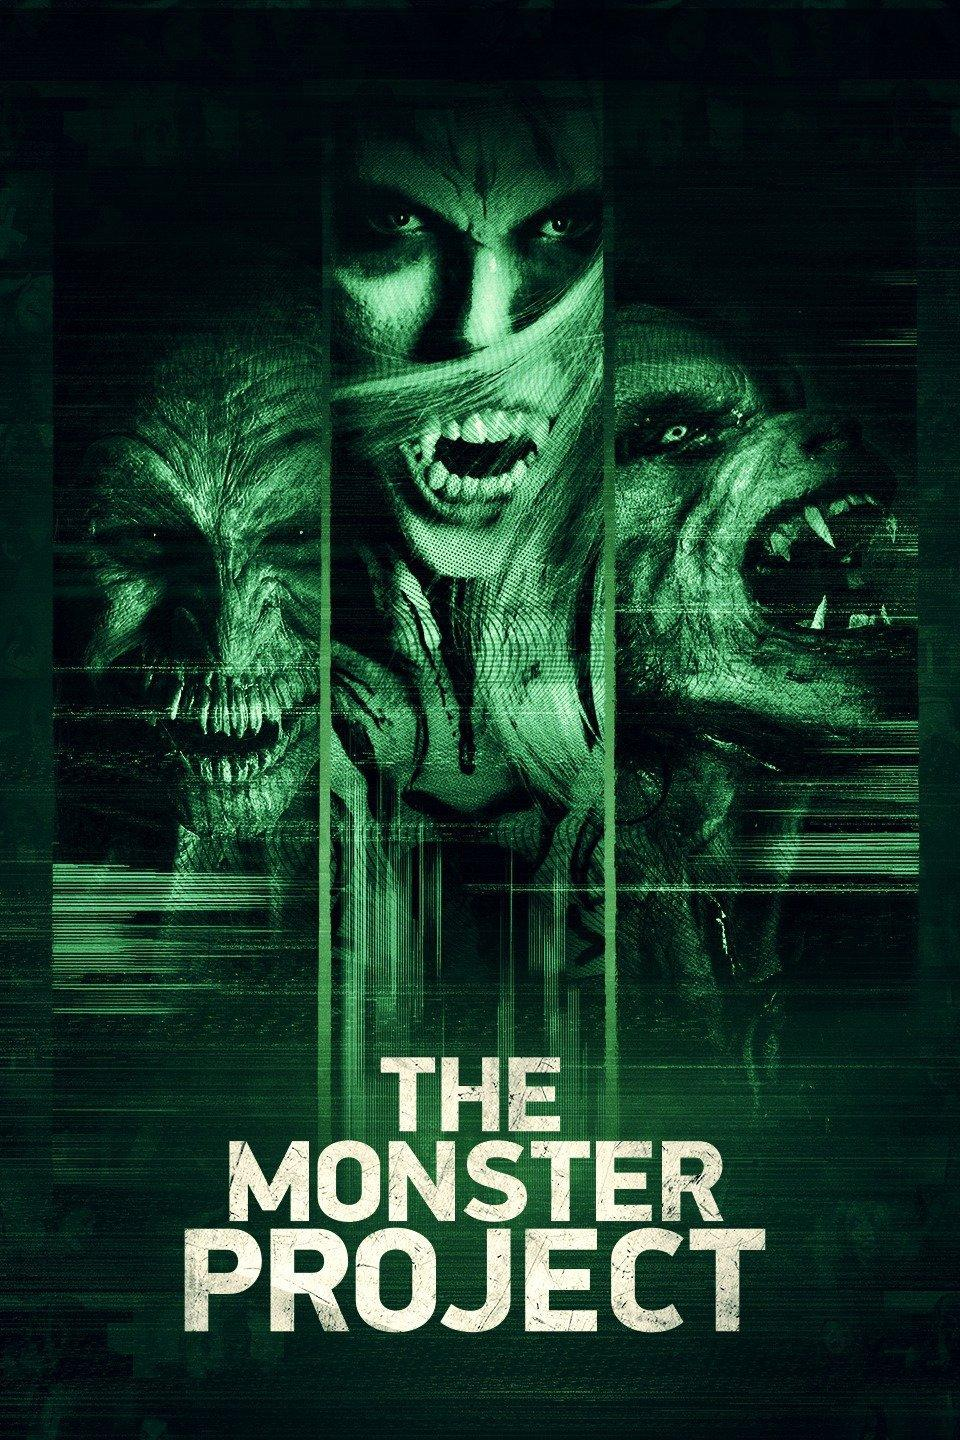 The%20Monster%20Project%202017.1 1 دانلود فیلم The Monster Project 2017